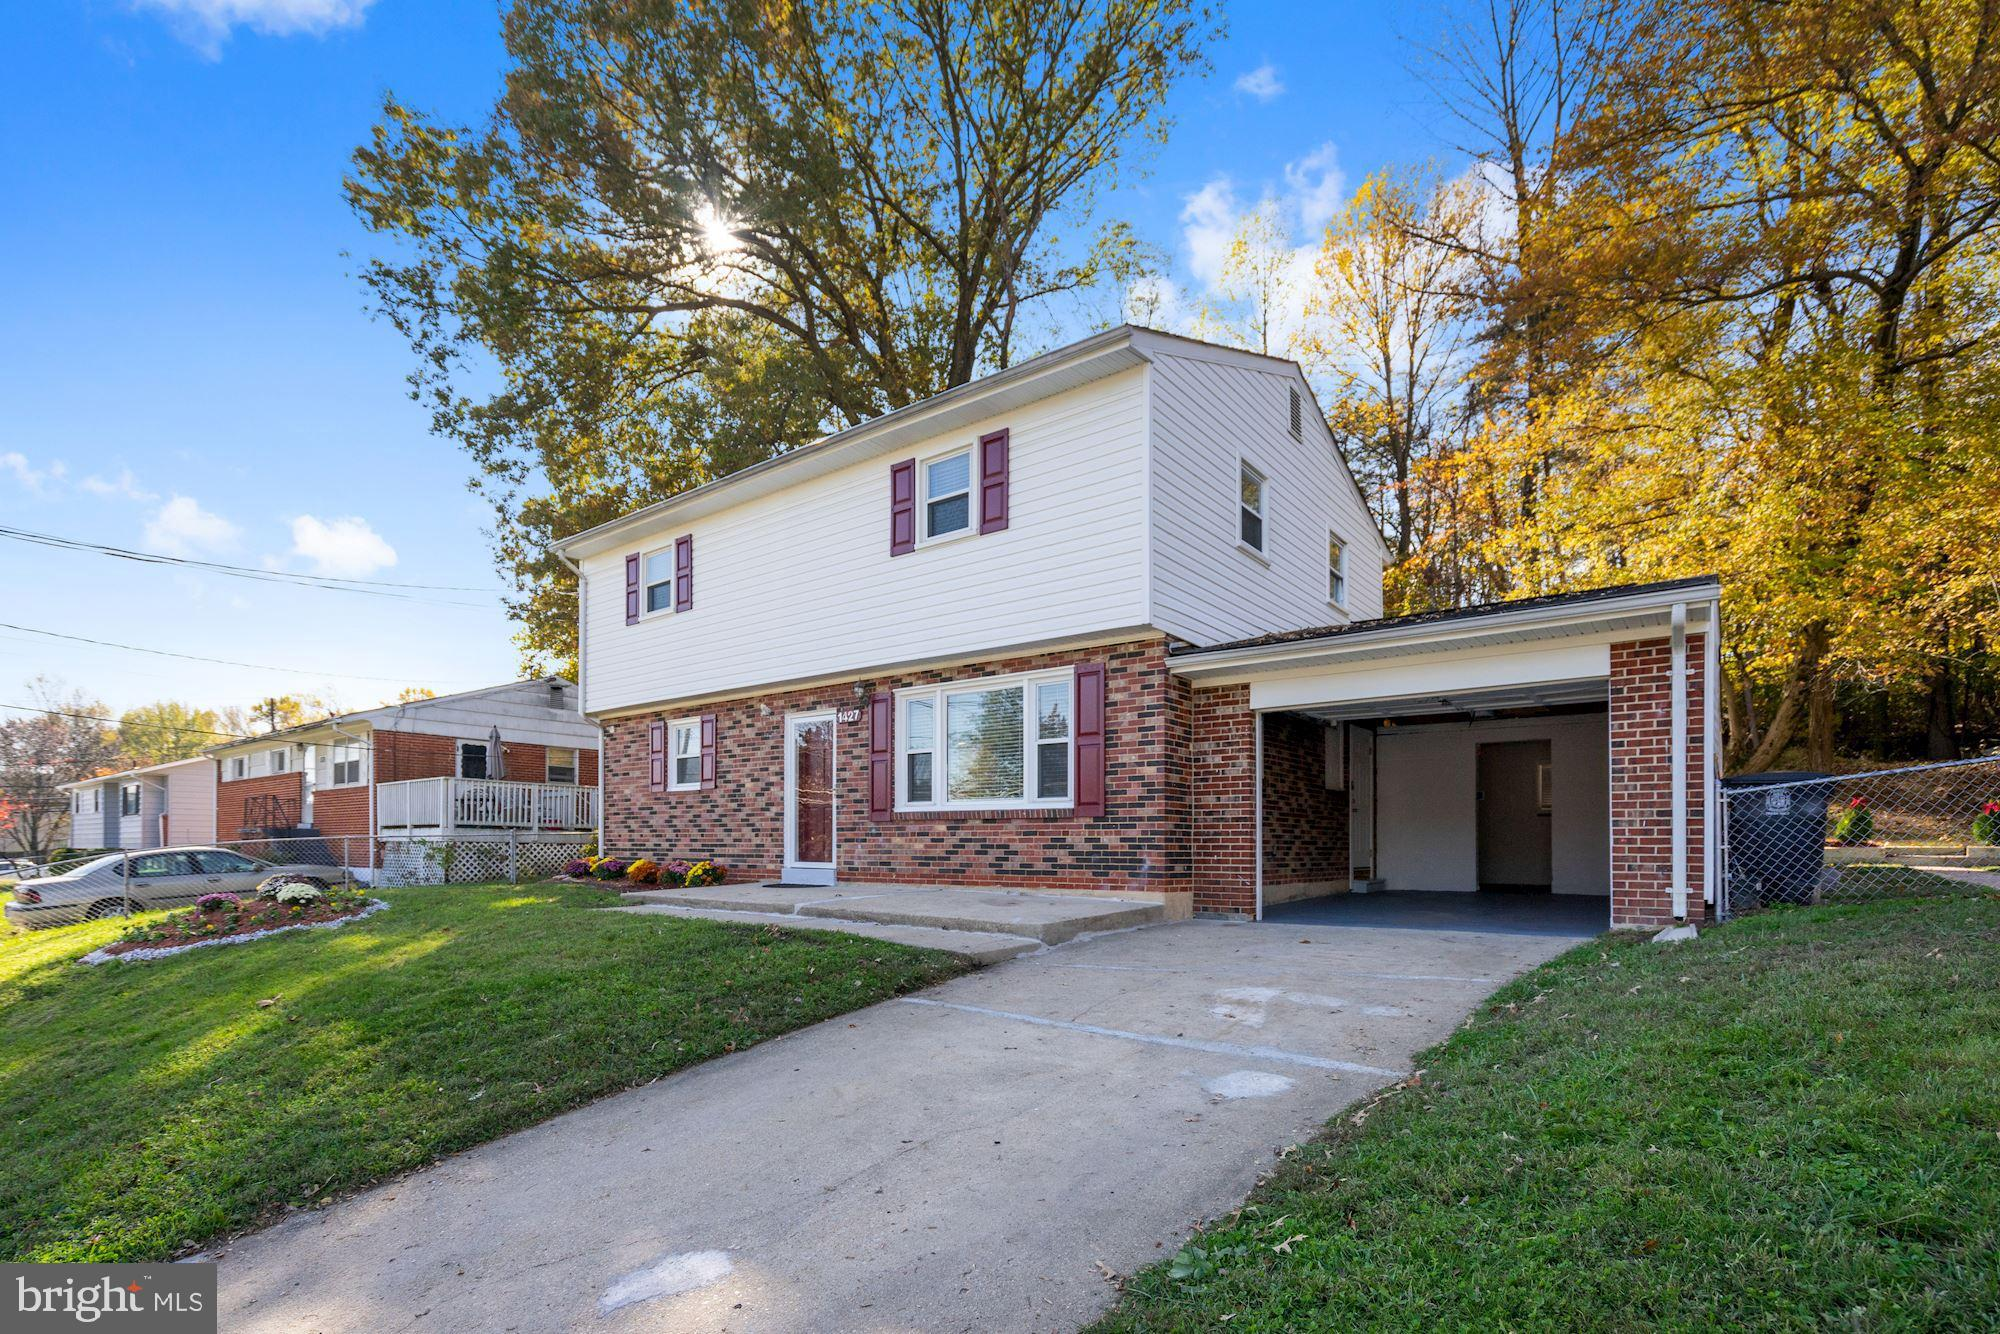 *Coming Soon* Motivated Seller!! Property is move-in ready!! This spacious brick front and siding wi